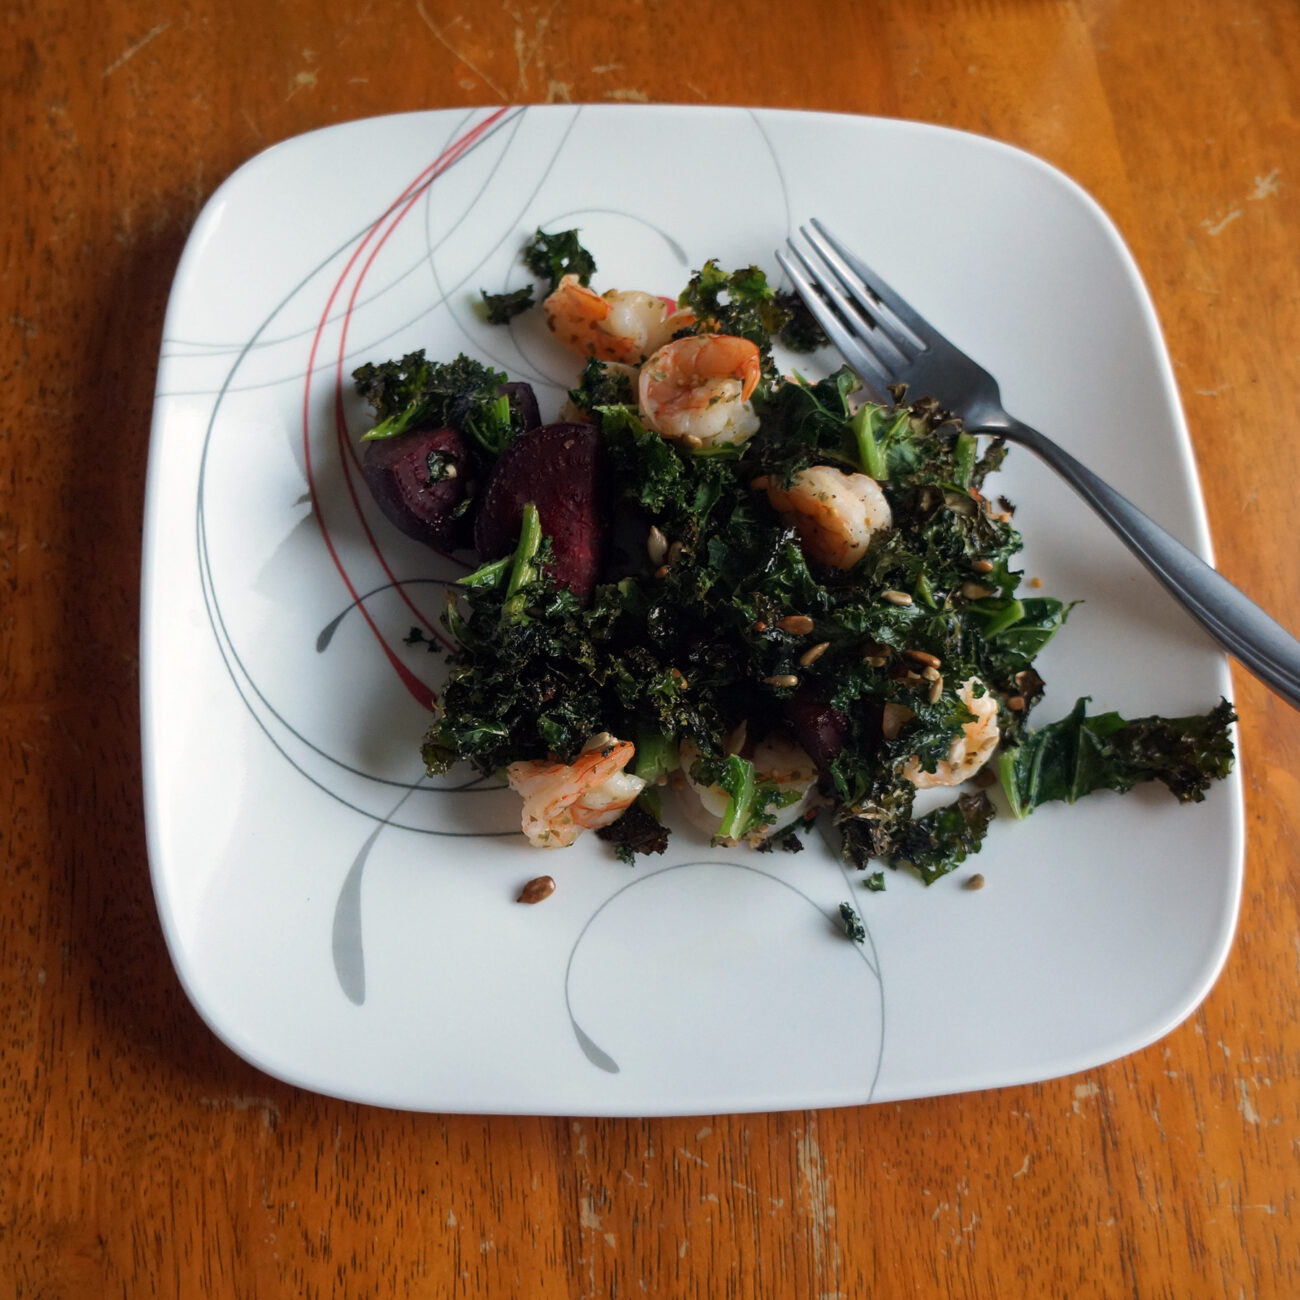 Shrimp, Kale and Beet Sheet Pan Dinner